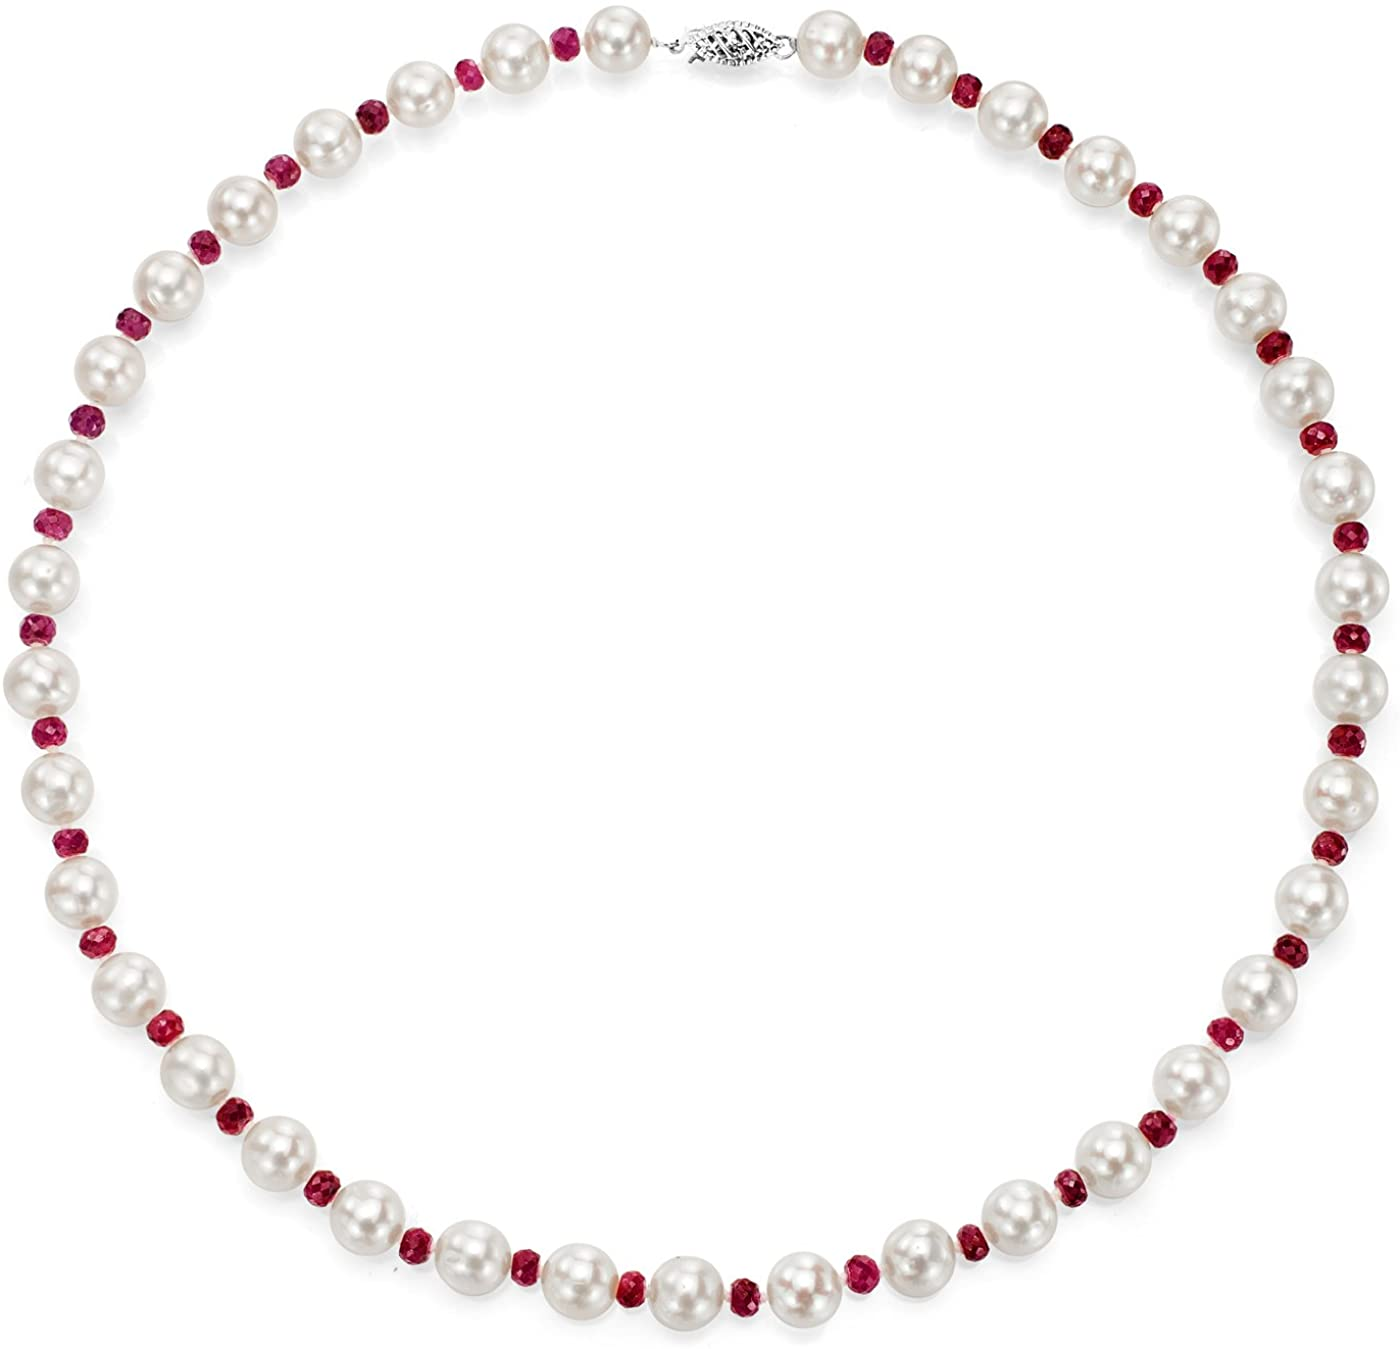 14K White Gold Freshwater Cultured White Pearl Necklace Simulated Gemstone Jewelry for Women 18 inch (Choice of Length)